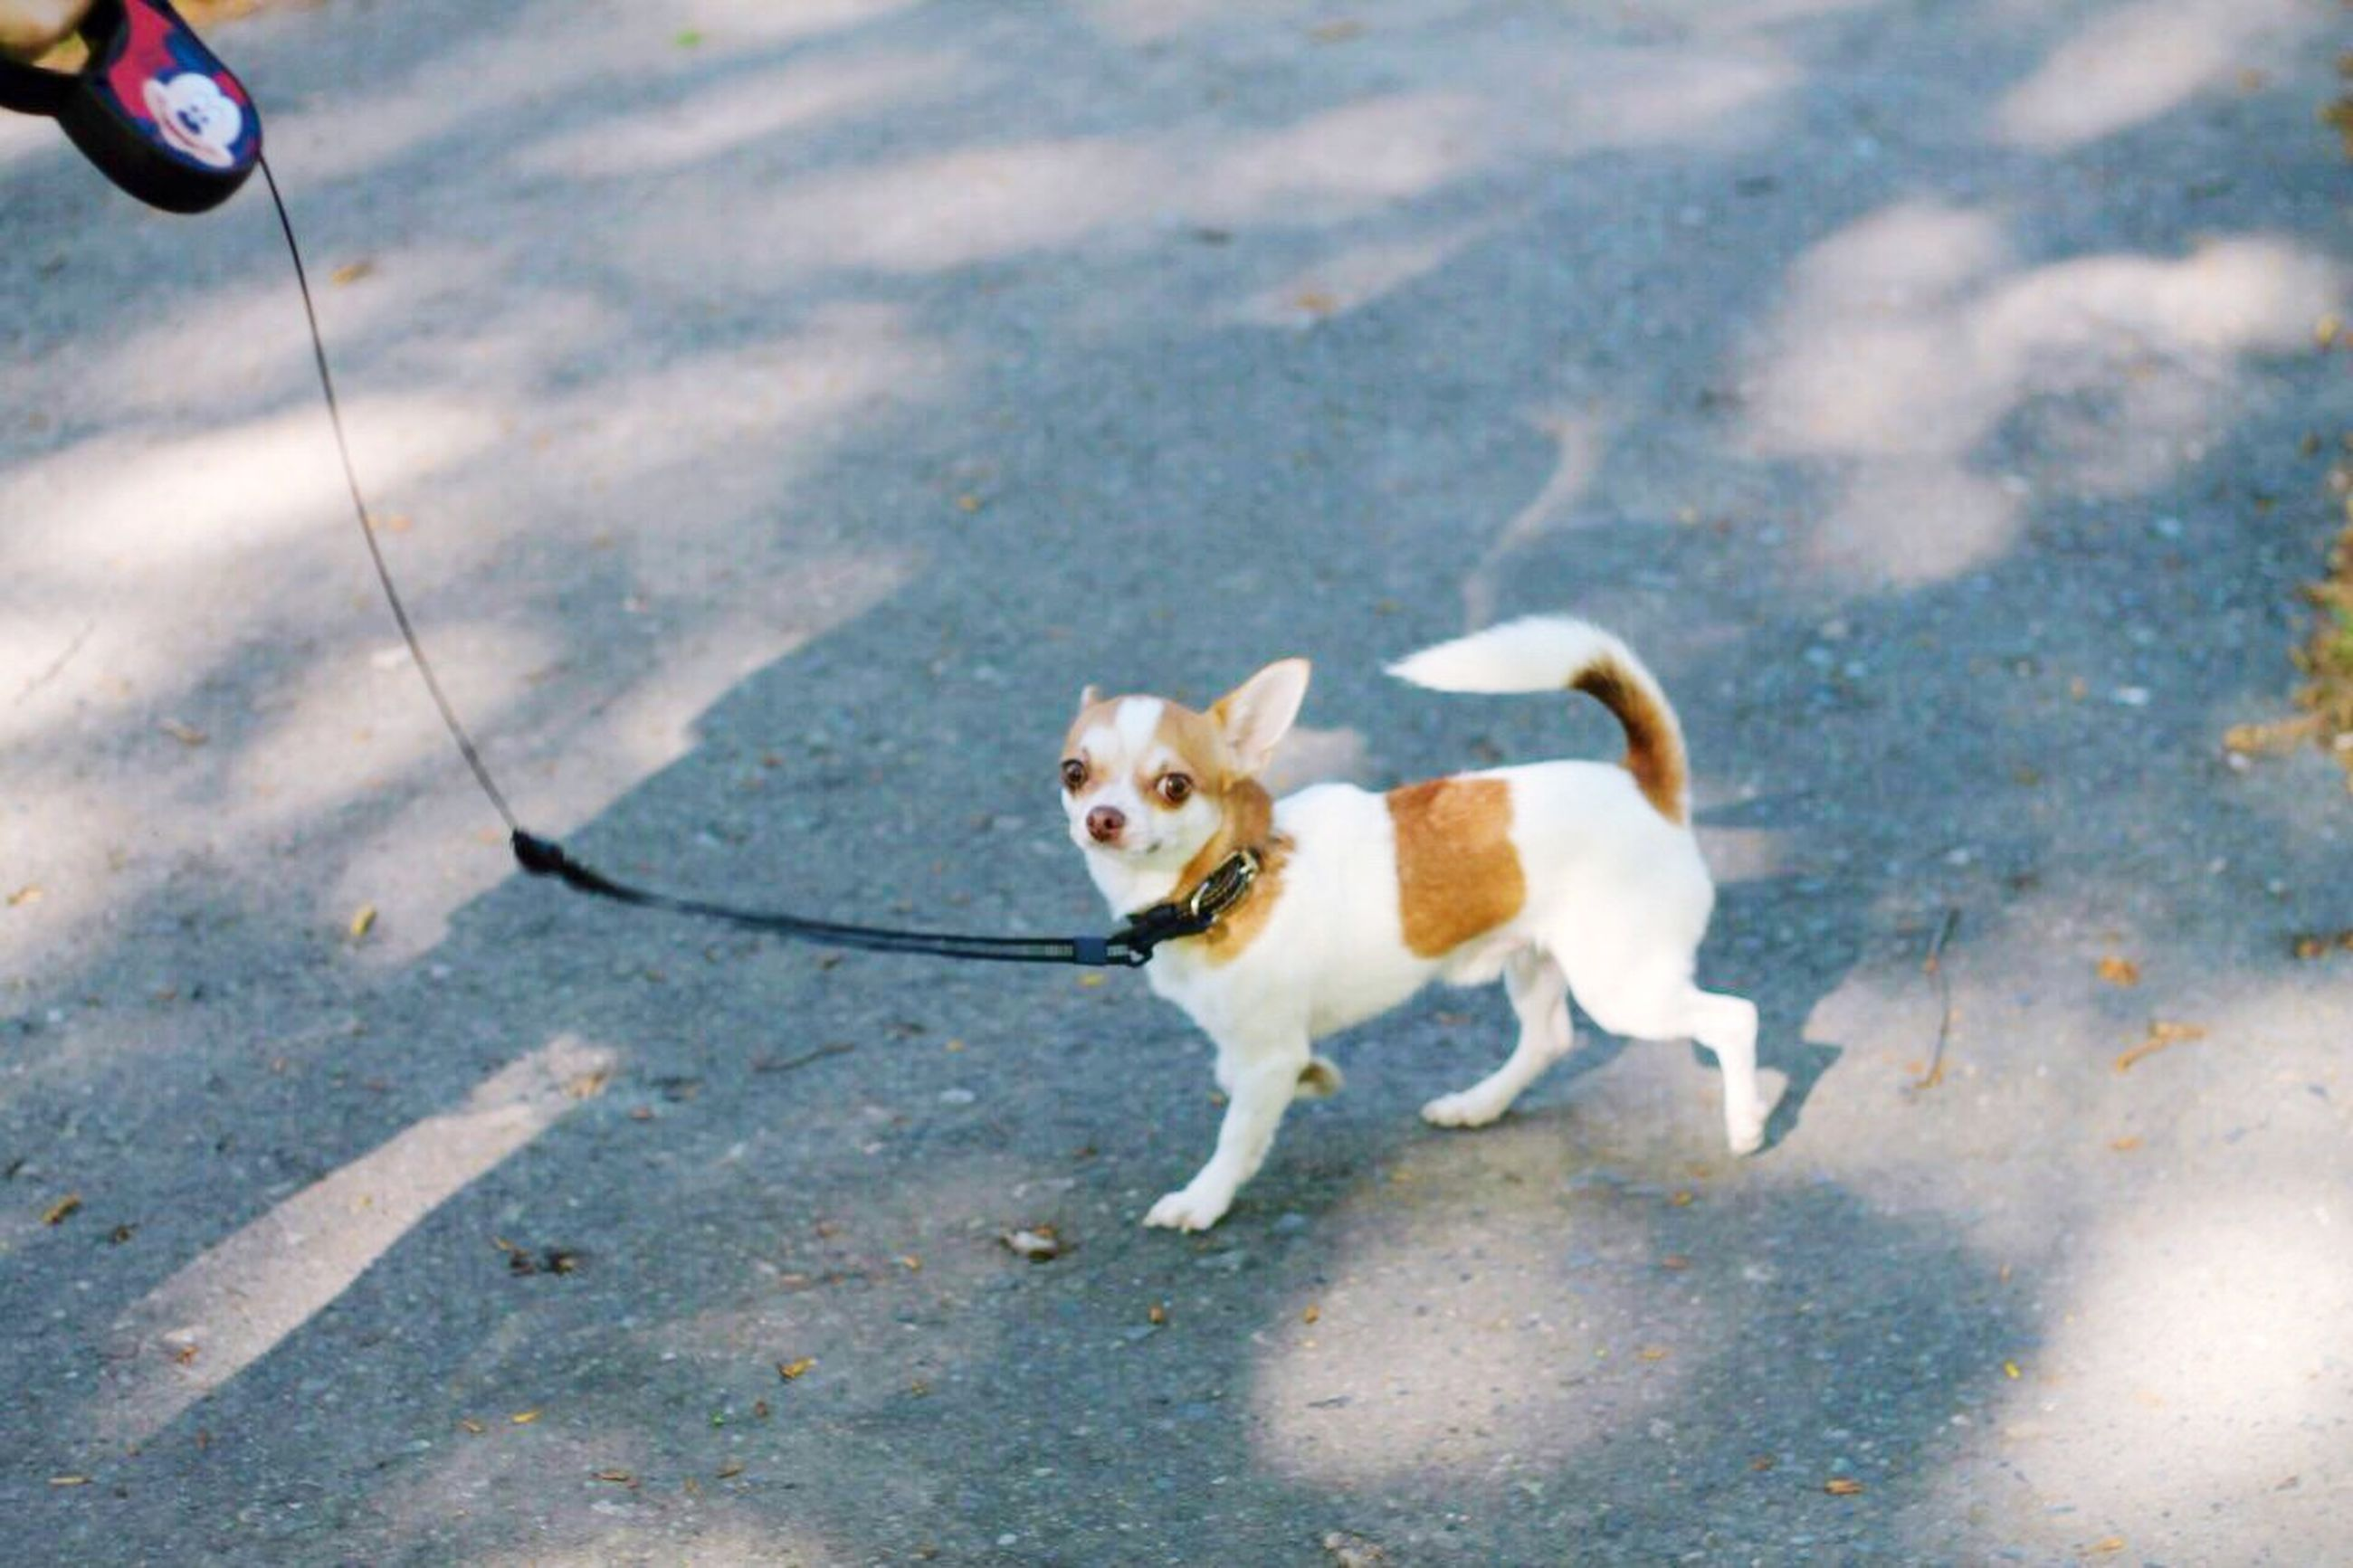 domestic animals, animal themes, pets, dog, one animal, mammal, street, high angle view, road, pet leash, full length, asphalt, shadow, standing, sunlight, outdoors, sidewalk, white color, day, road marking